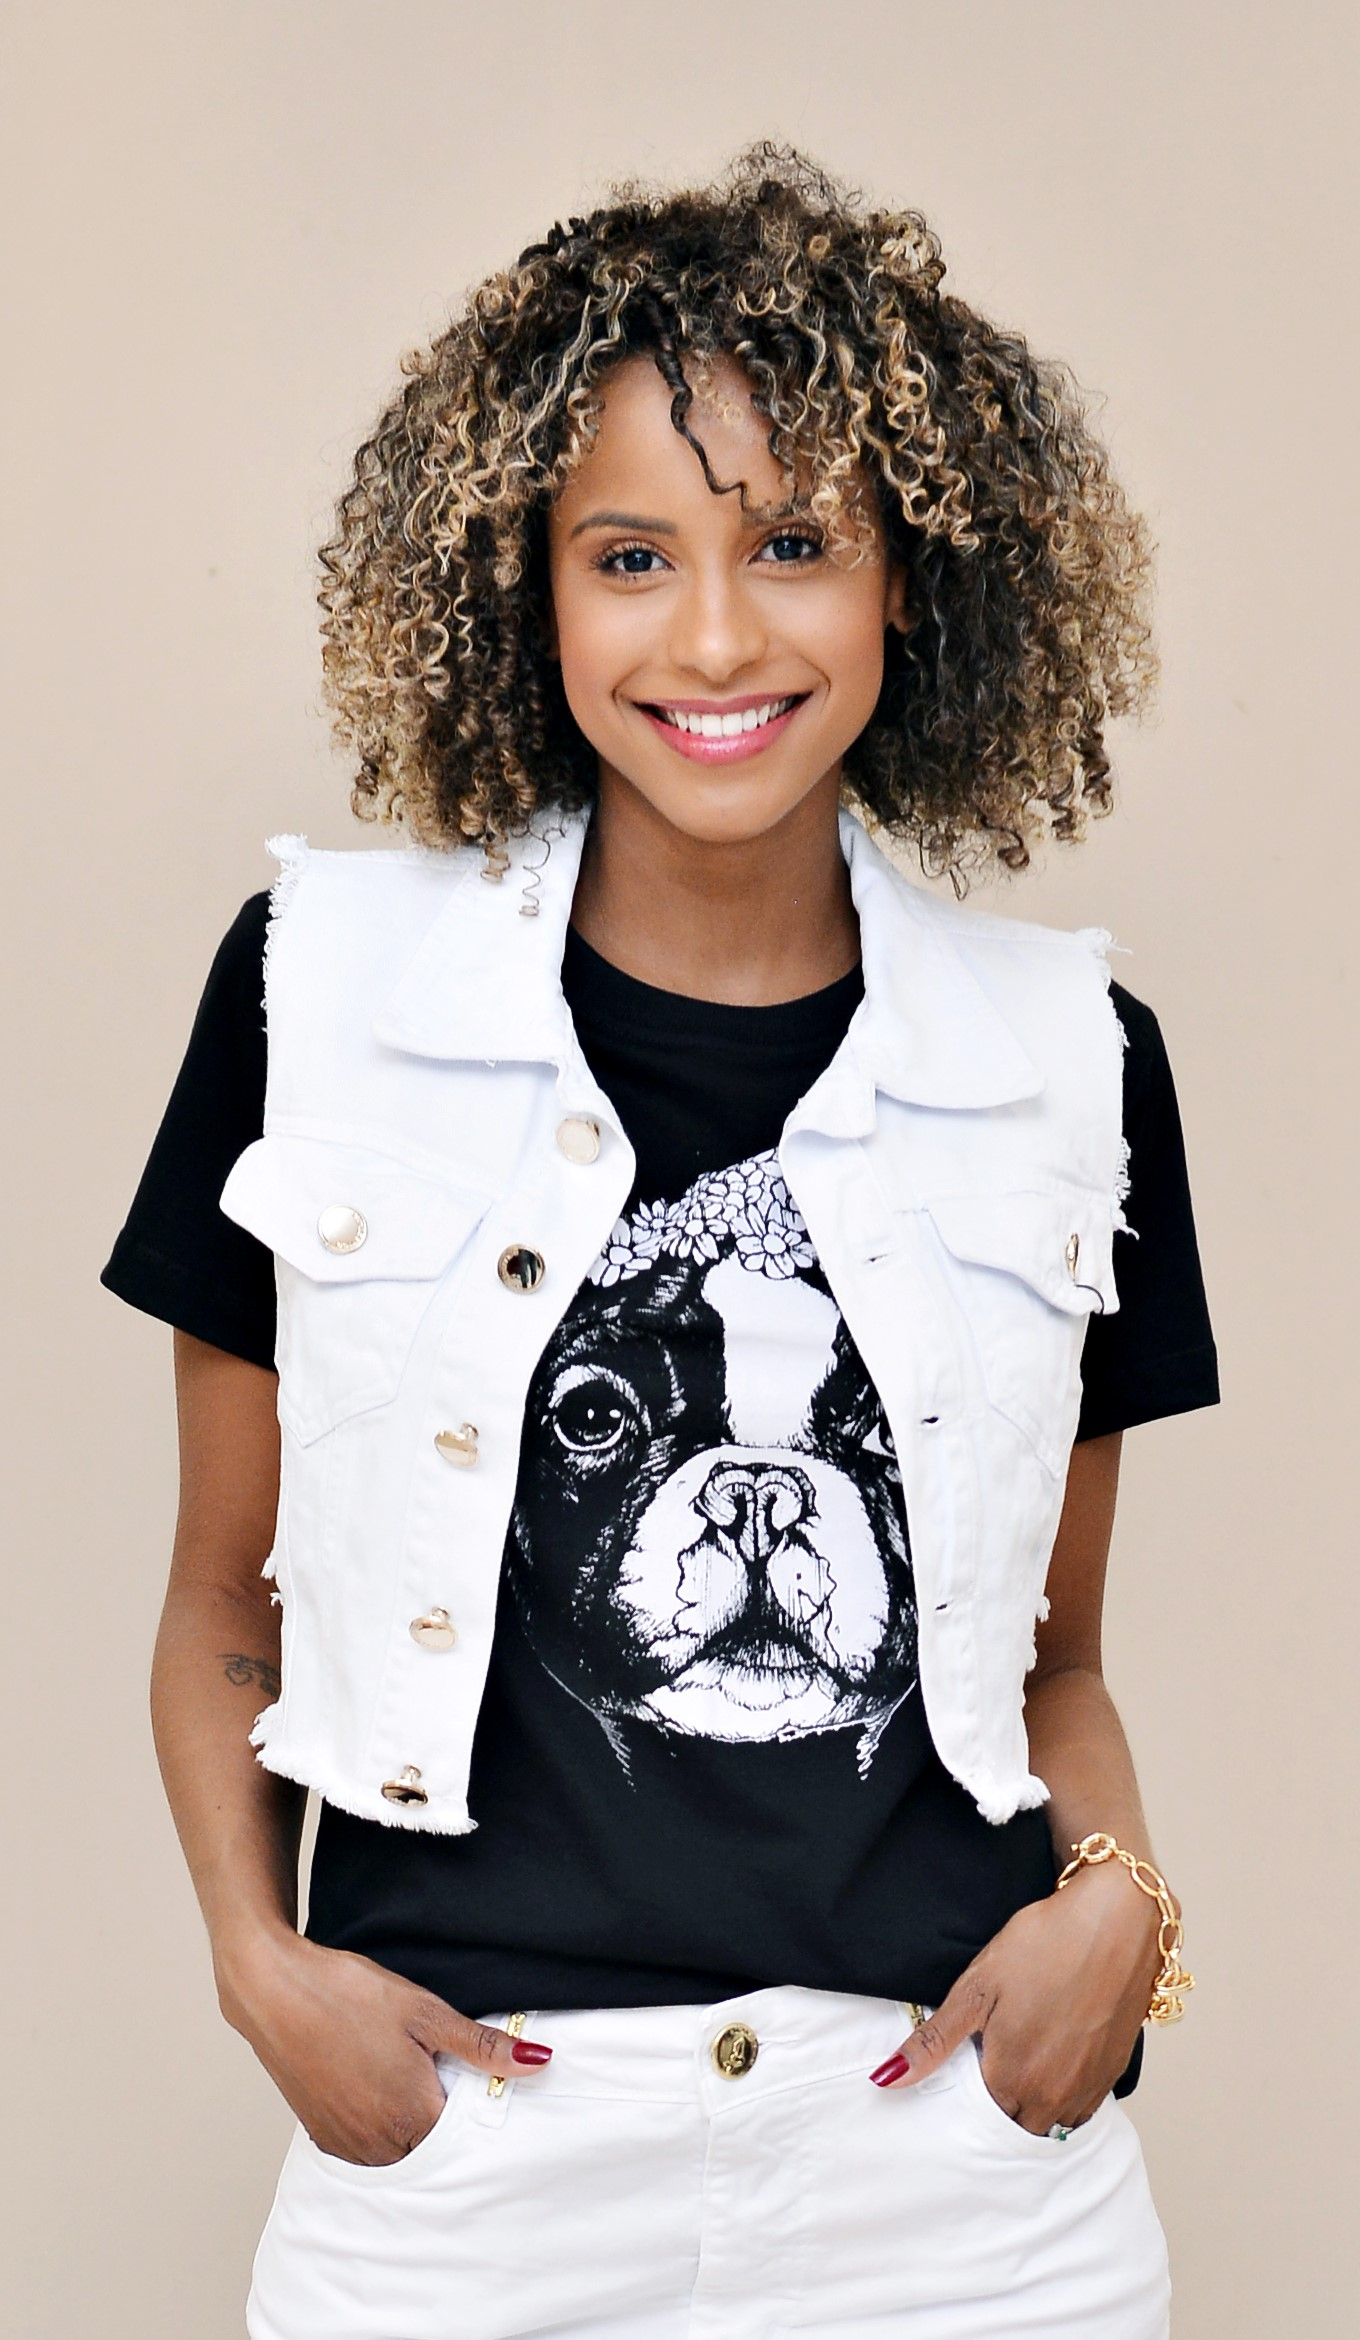 T-SHIRT DOG - NATHALIE FERRIER